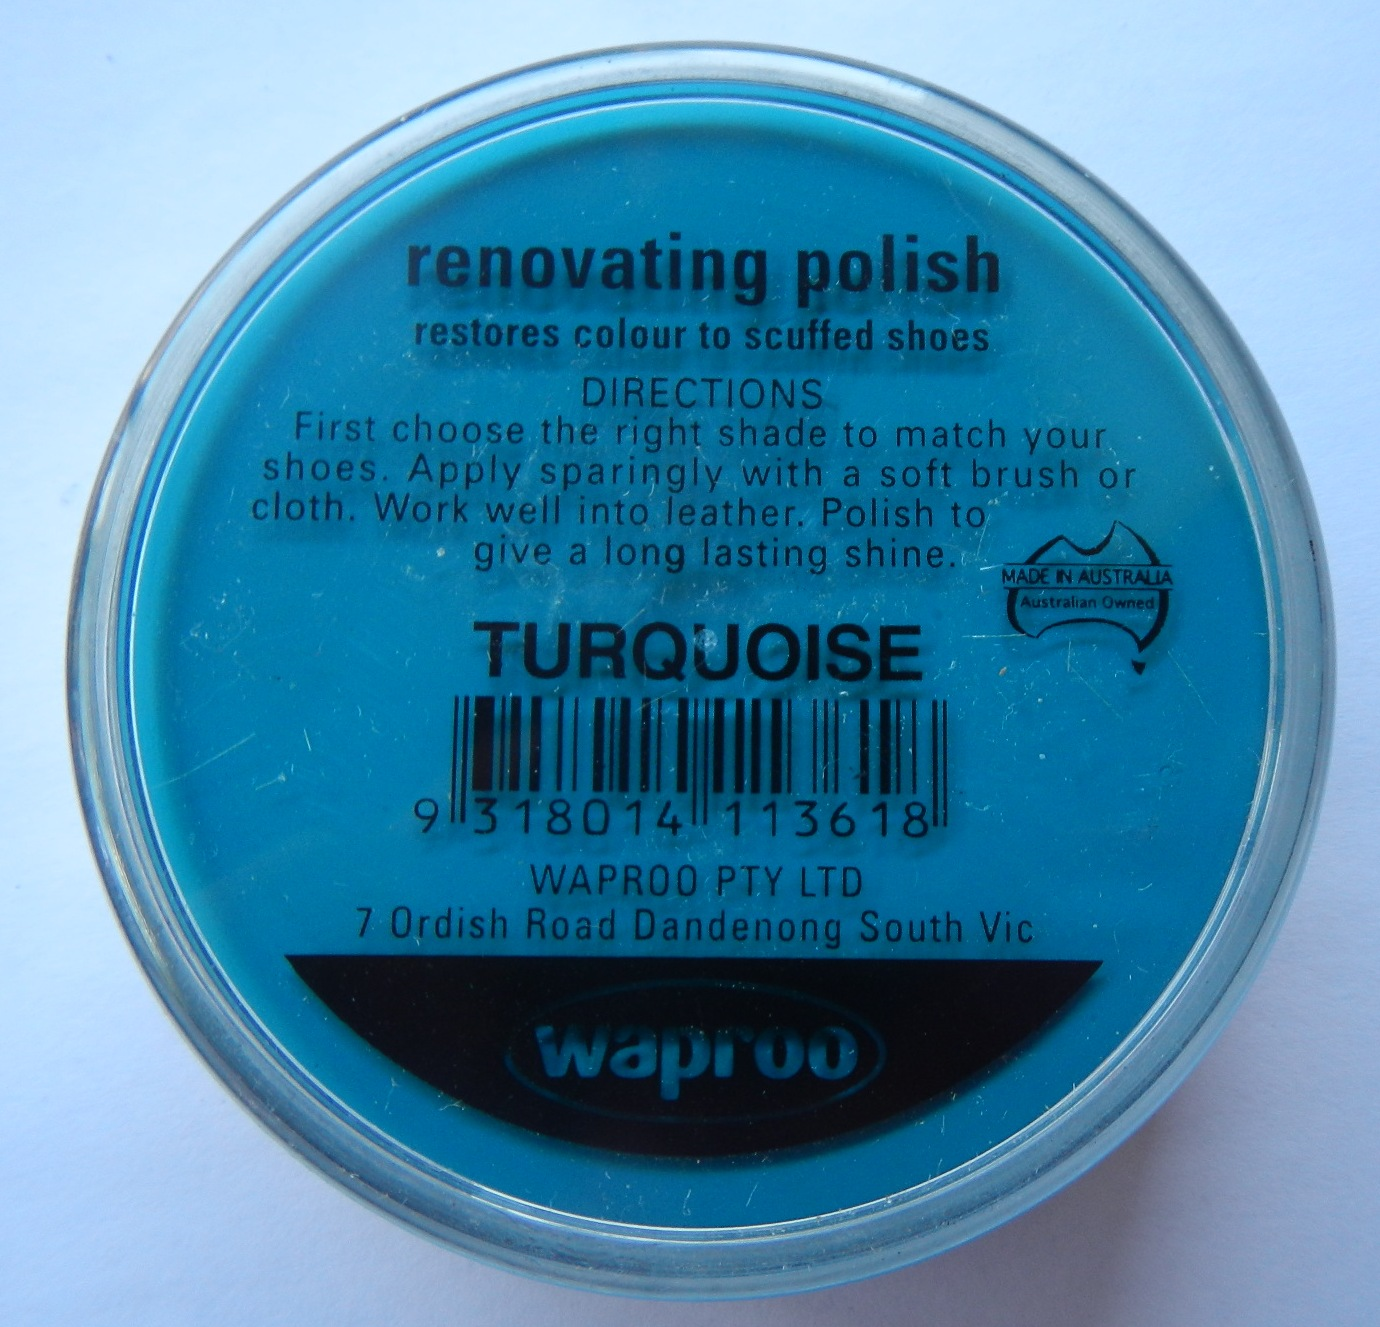 Turquoise renovating polish